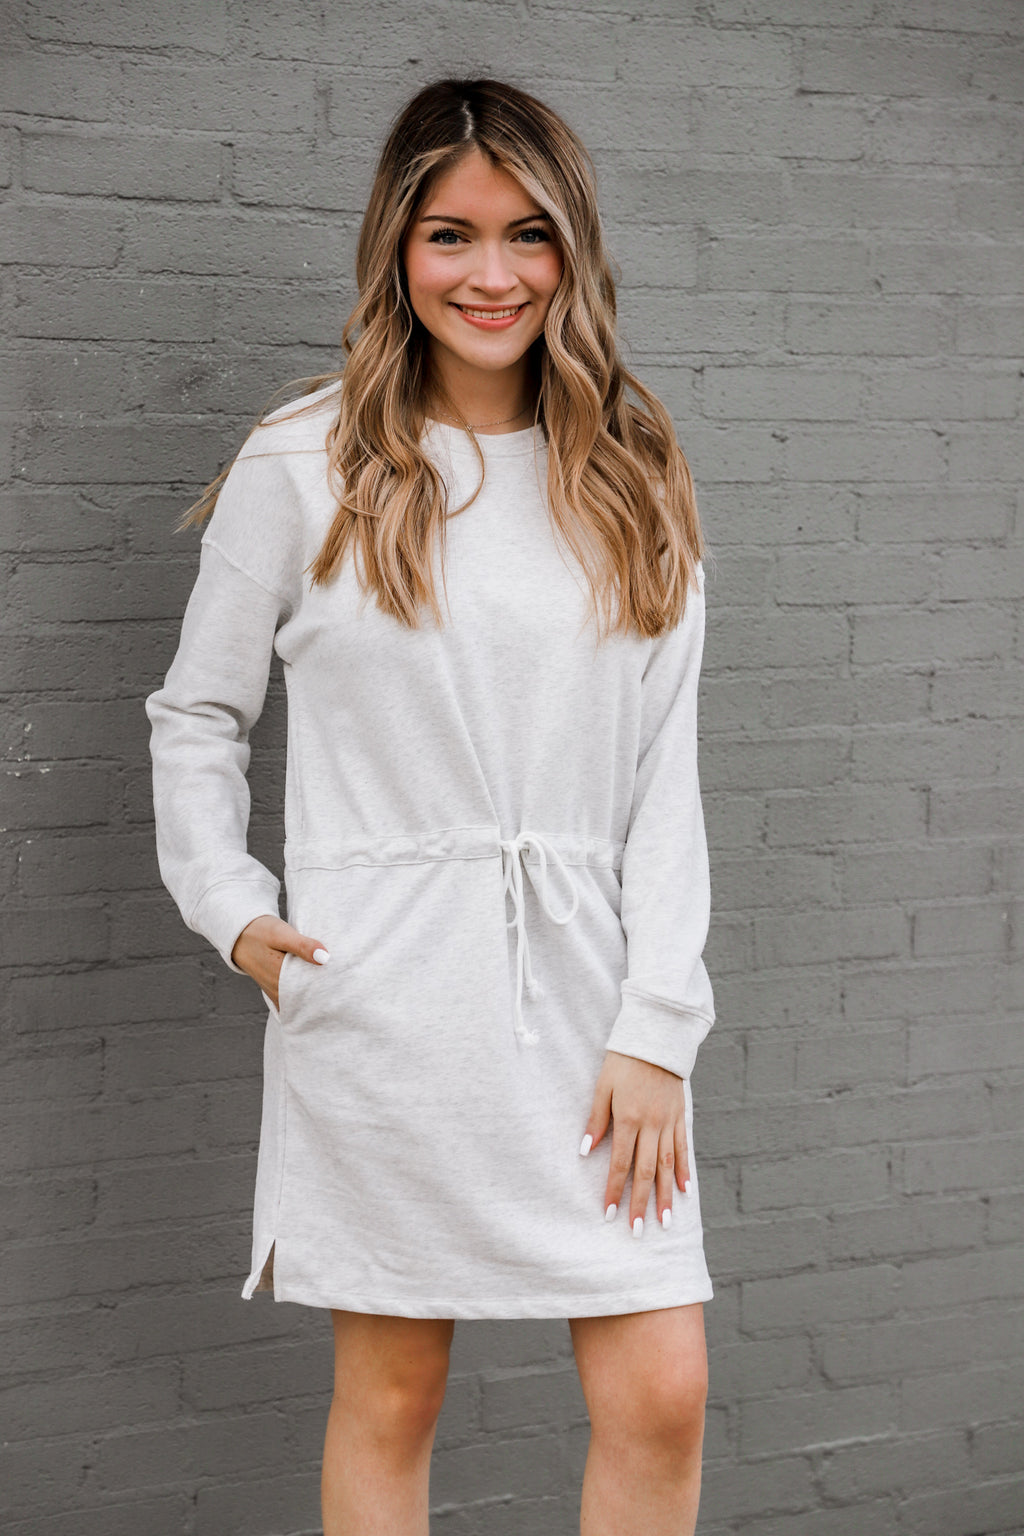 Yield My Heart Marble Gray Sweater Dress